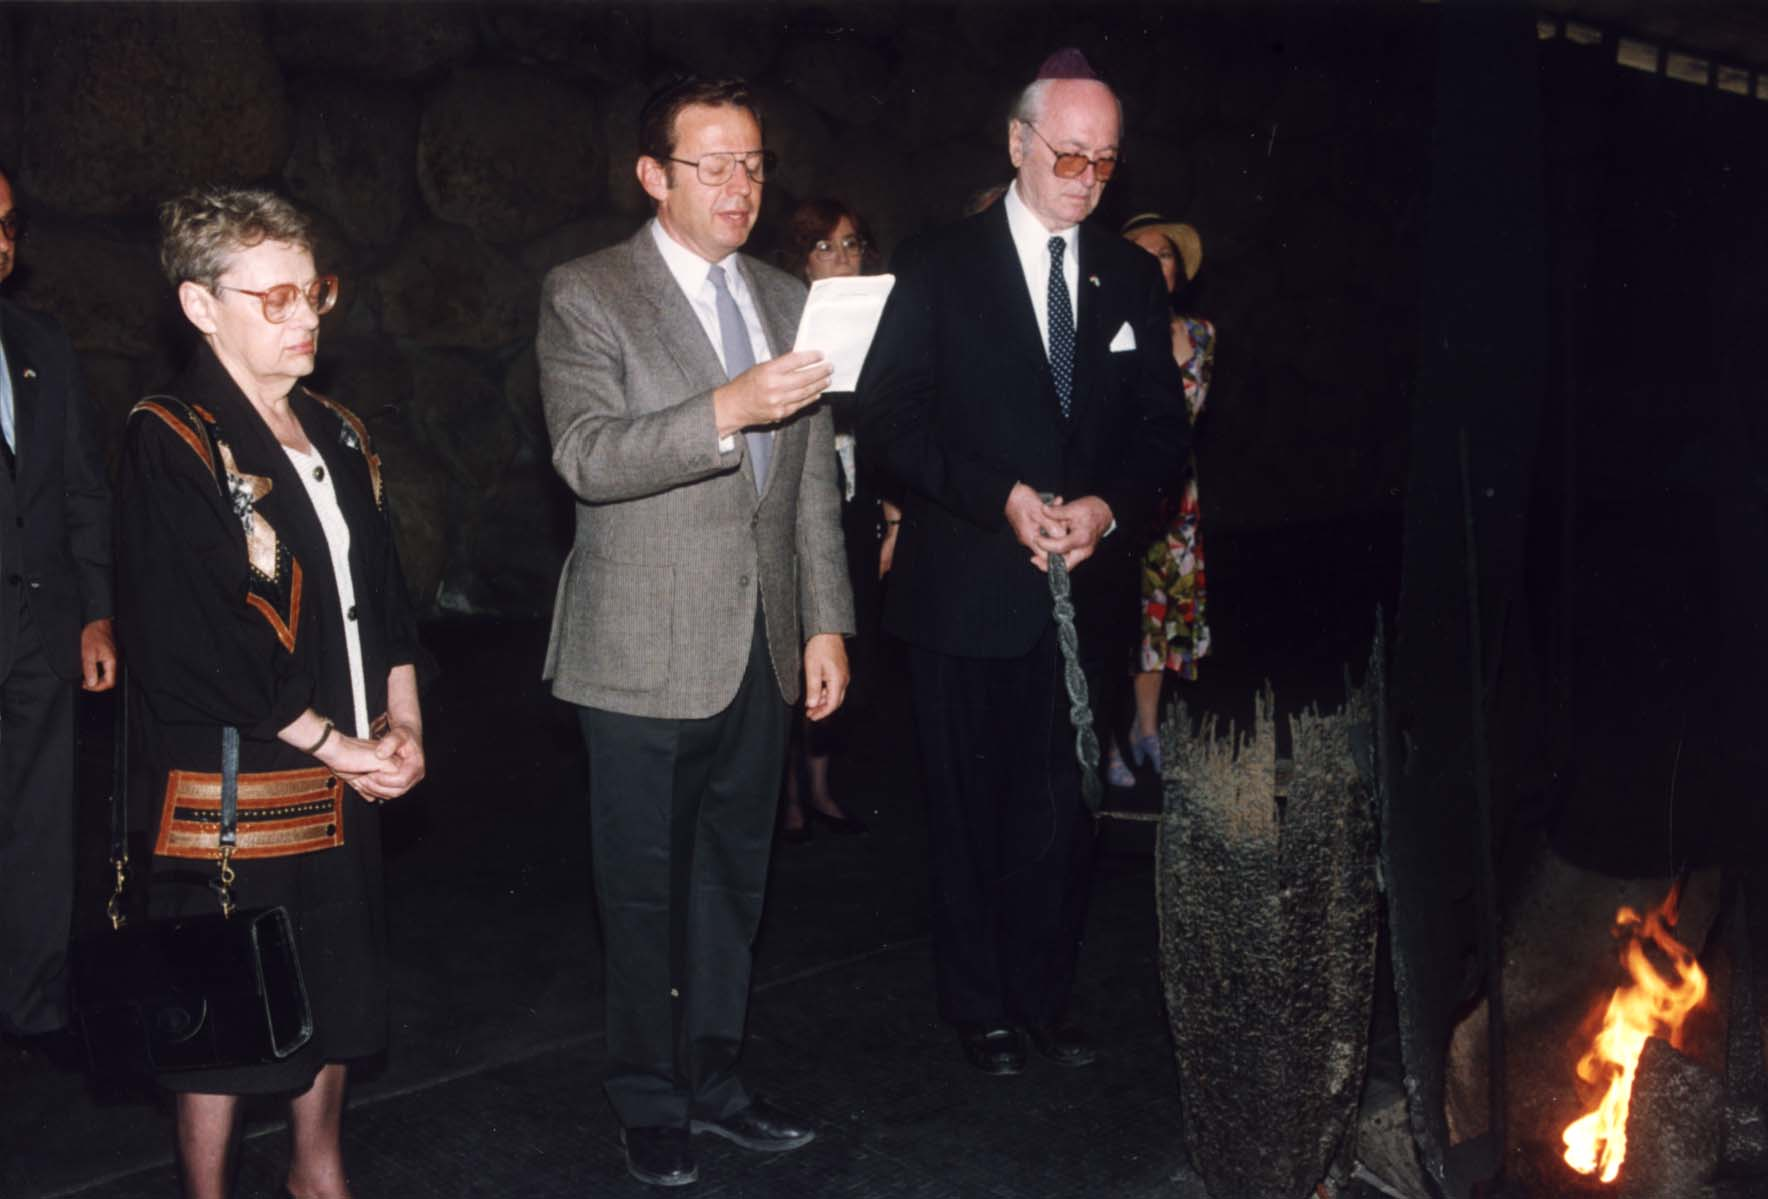 Ceremony in the Hall of Remebrance in honor of Bela Kiraly. Yad Vashem, 10.05.1993